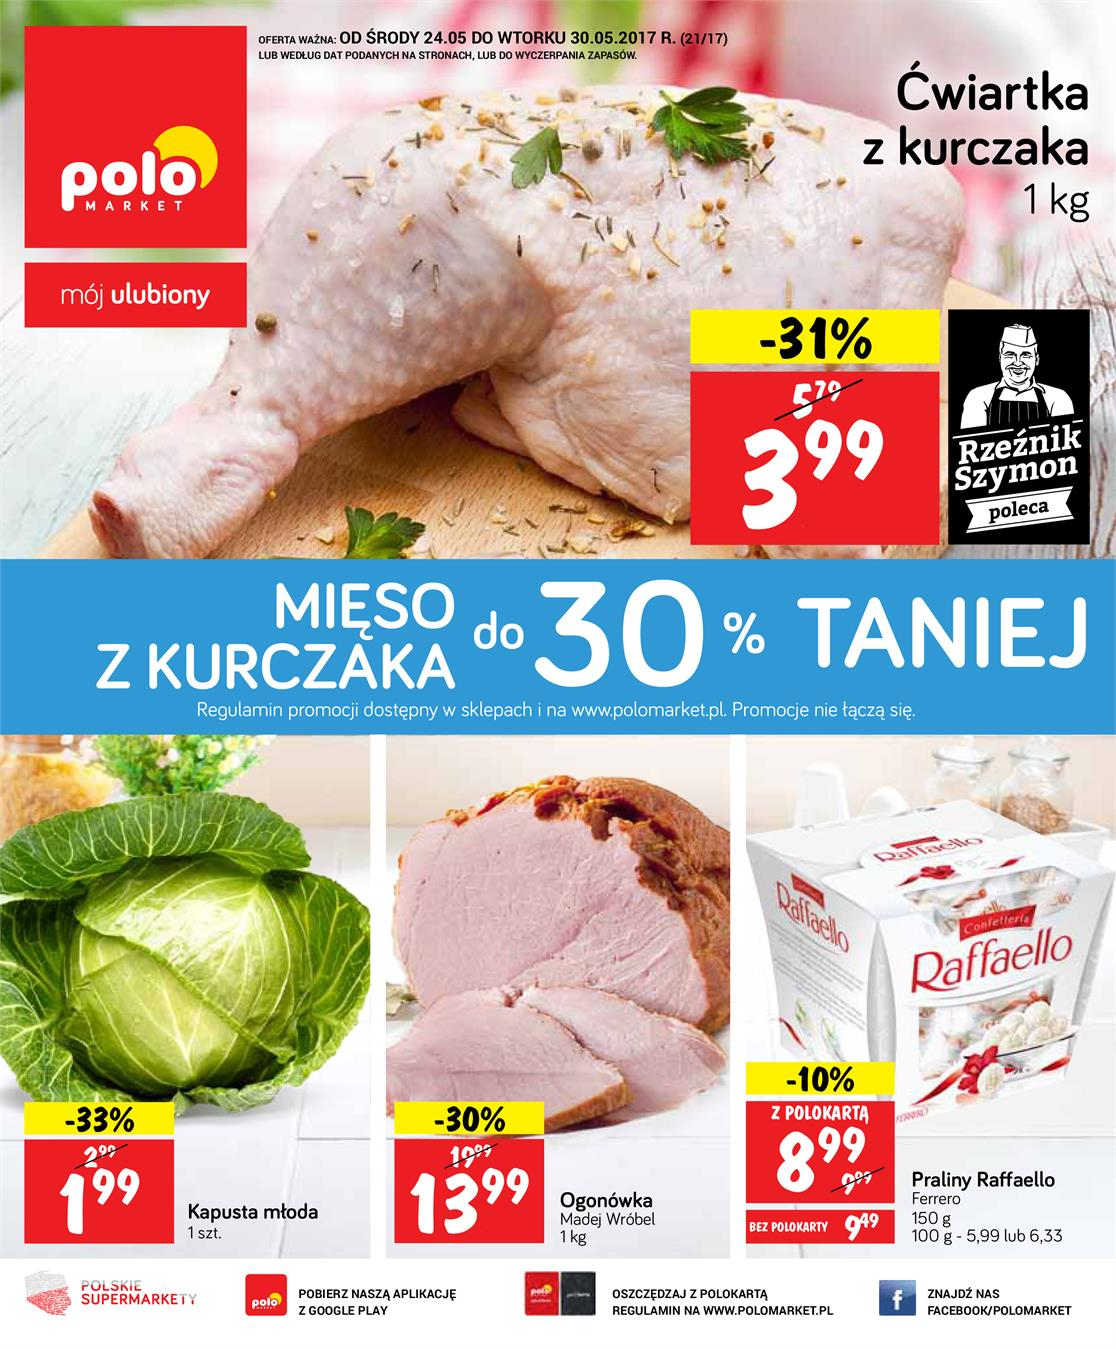 Gazetka Polomarket Sp. z o.o. nr 0 od 2017-05-24 do 2017-05-30